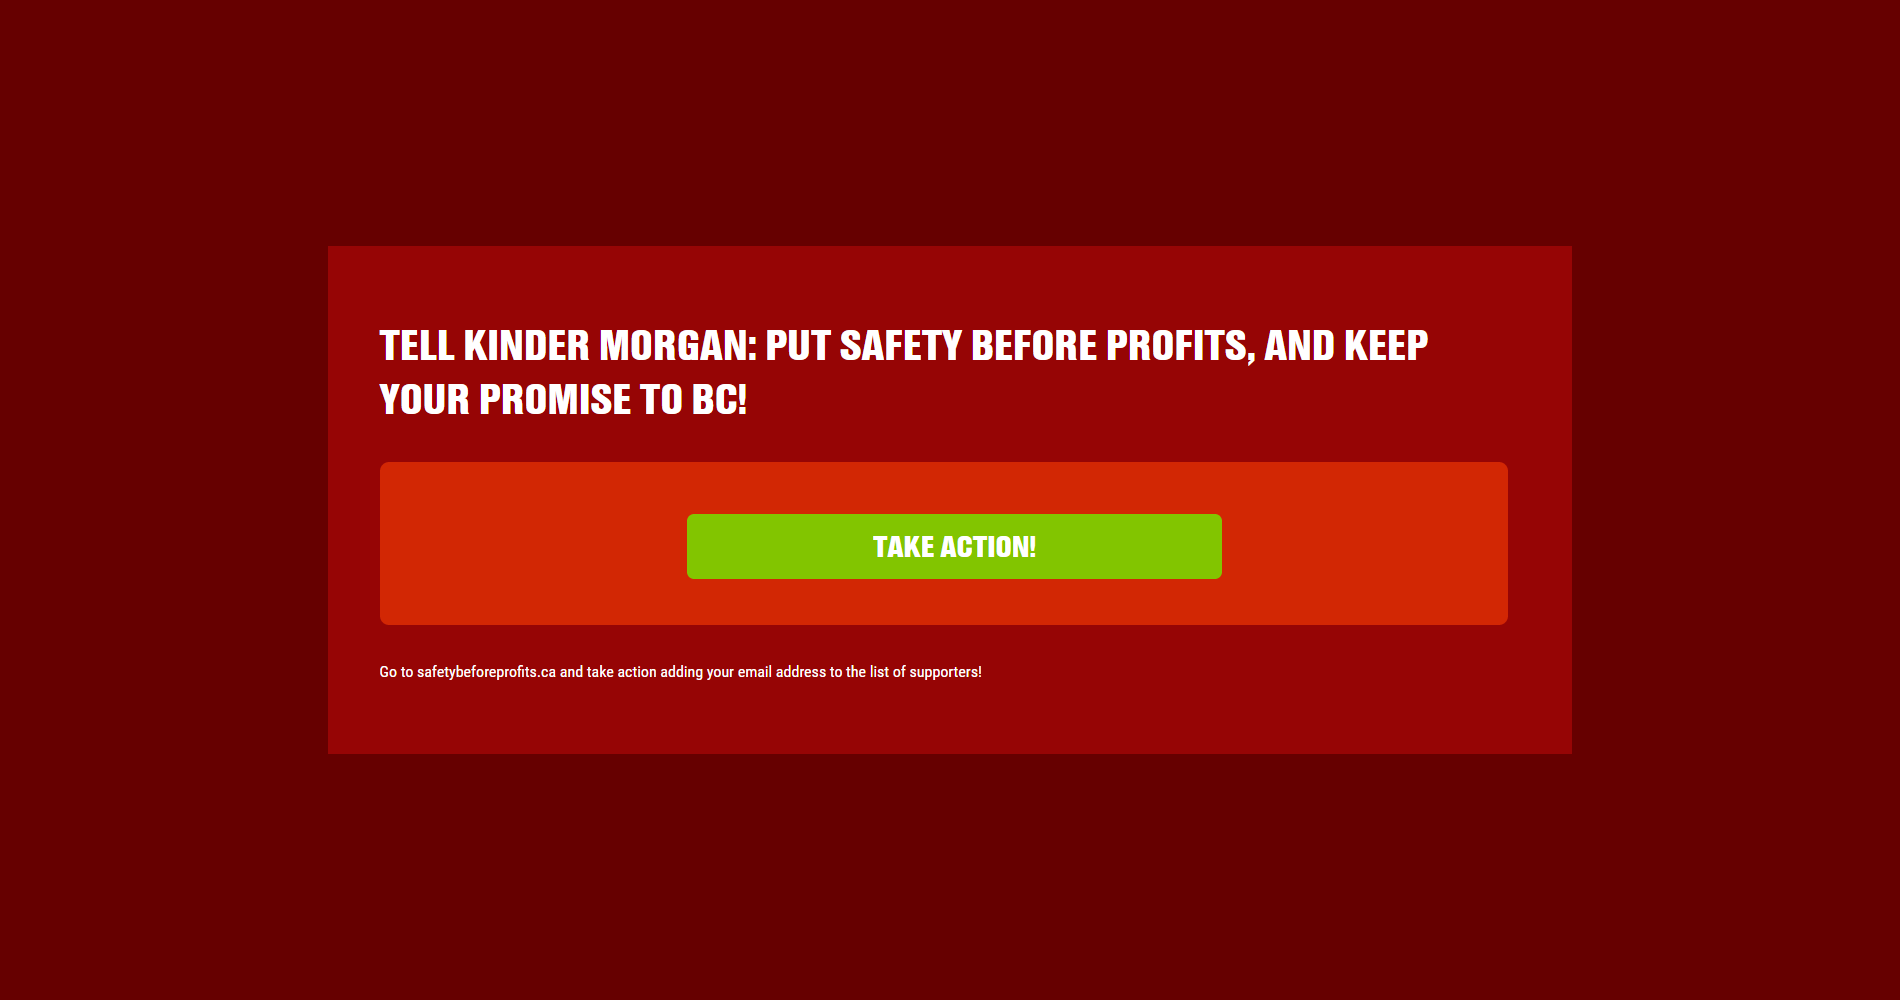 Tell Kinder Morgan: put safety before profits, and keep your promise to BC!